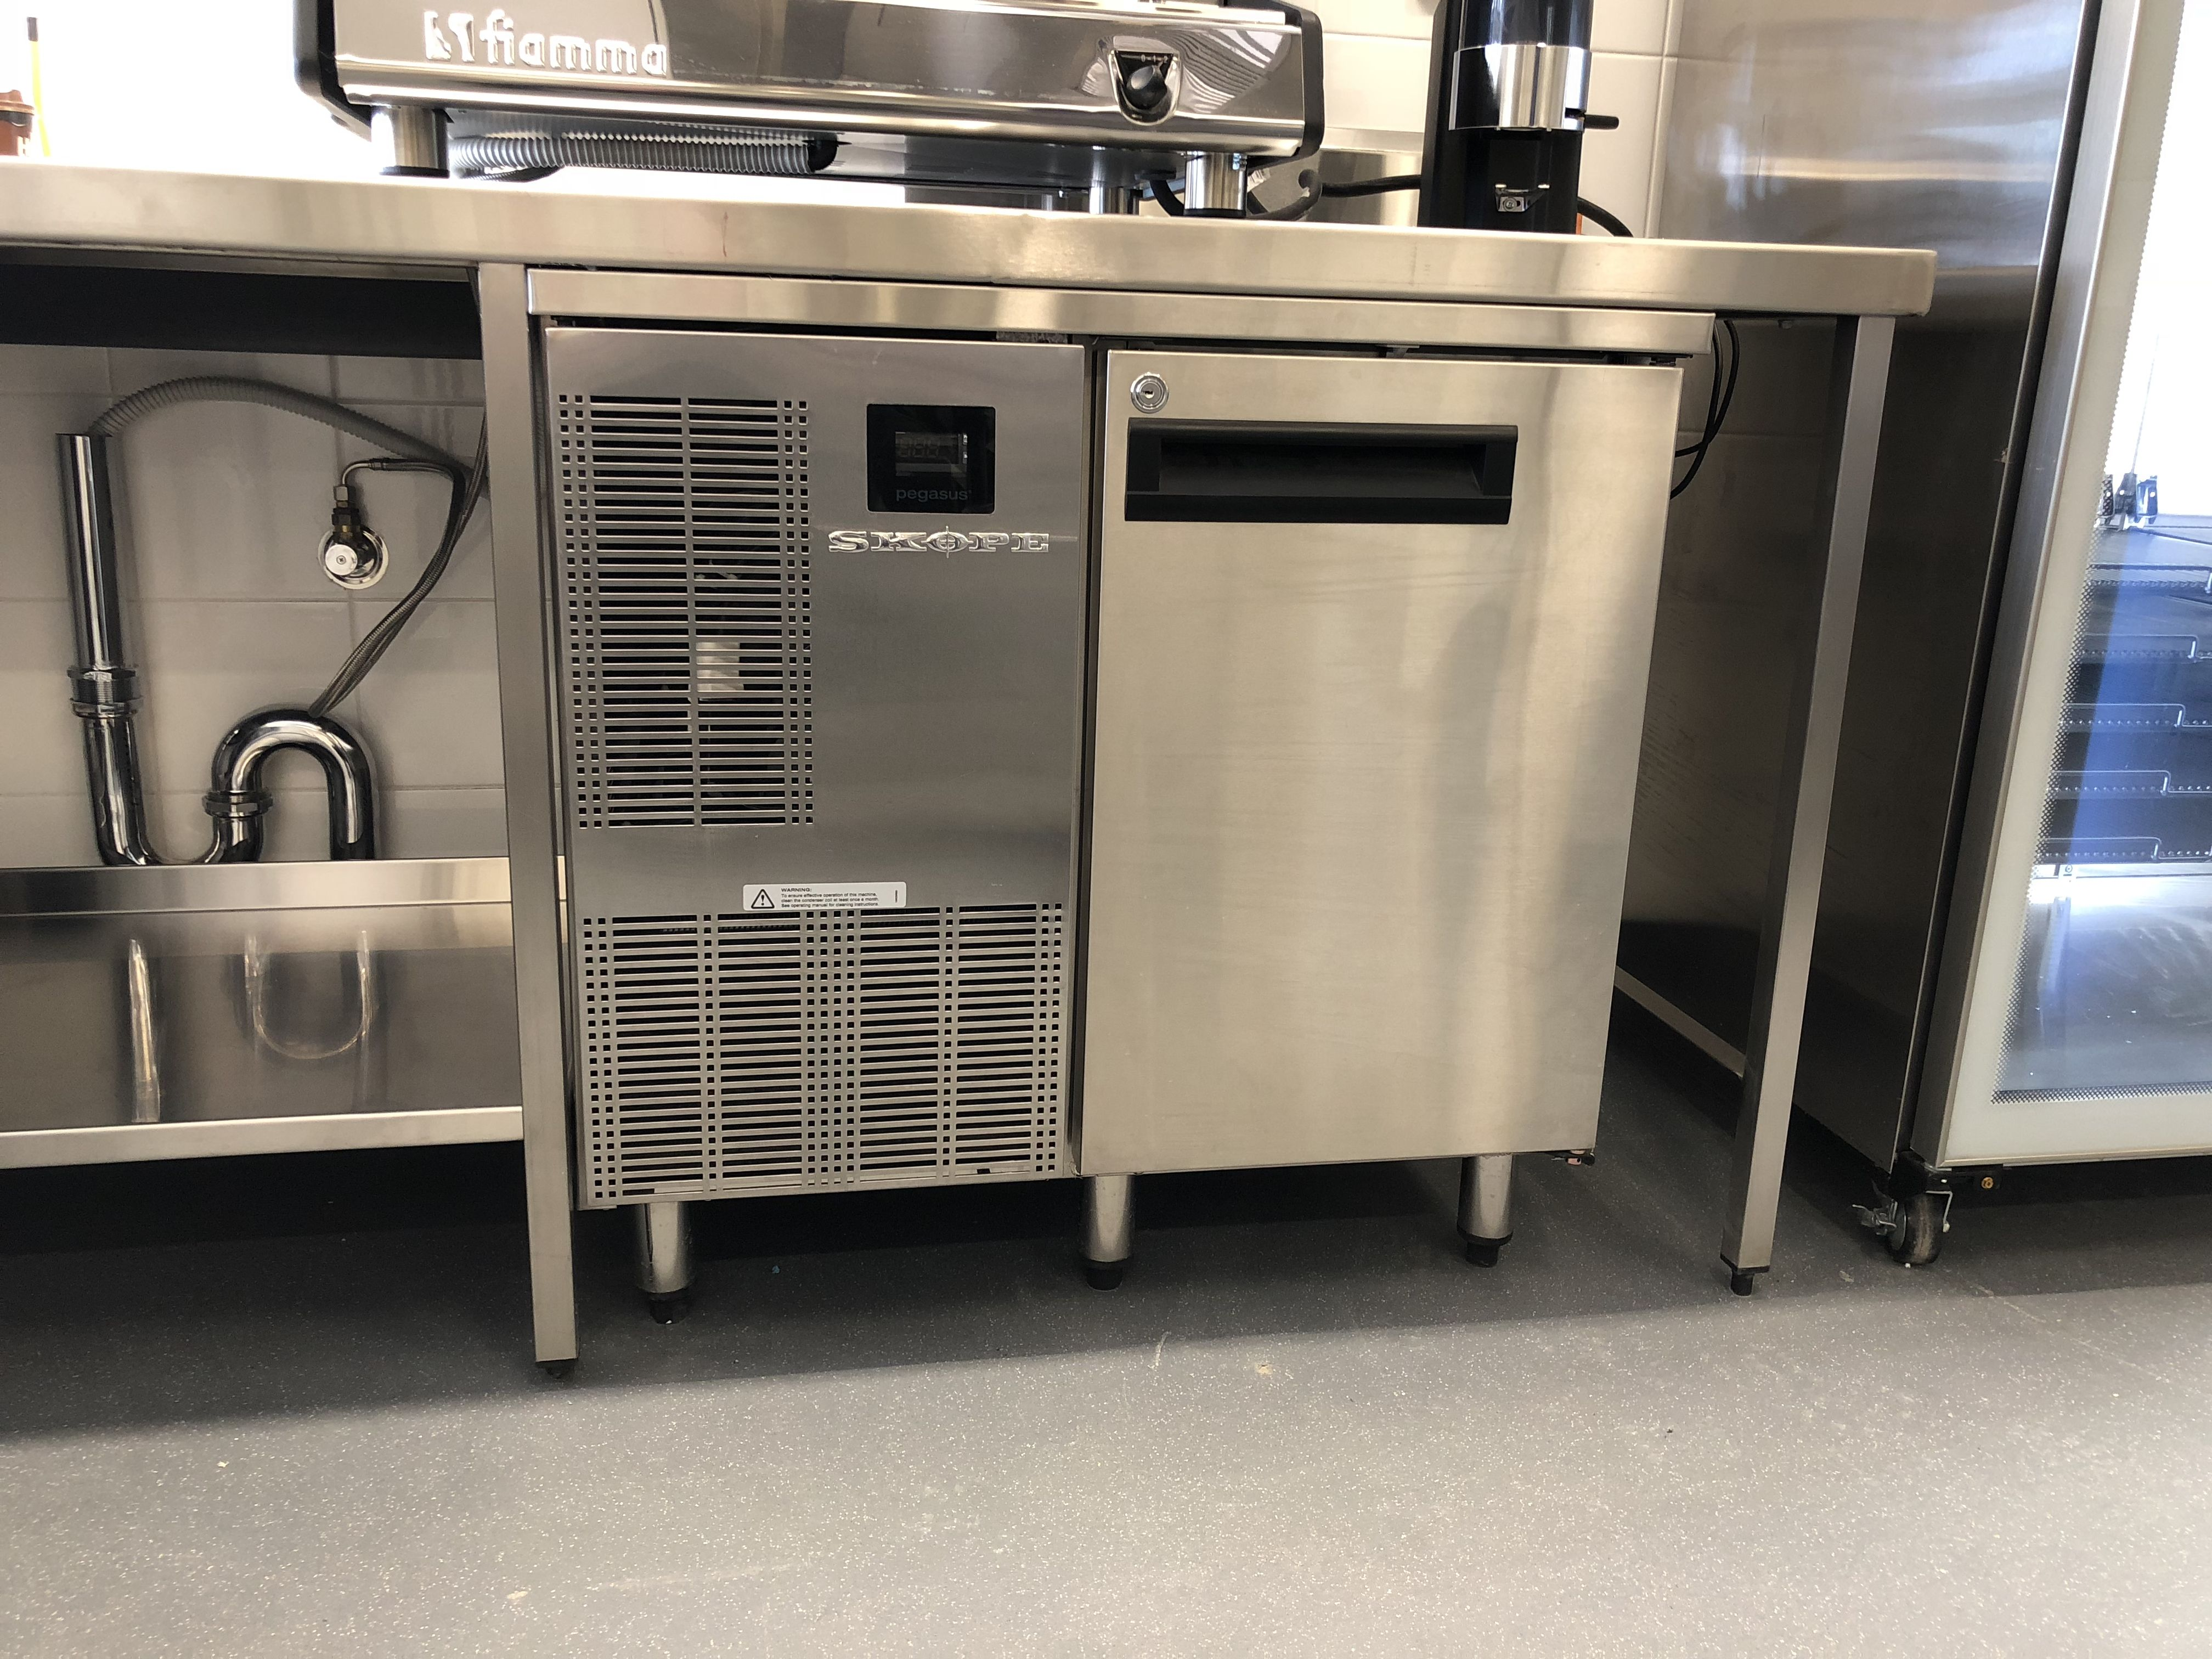 St Claire High School By Southern Hospitality With Skope Activecore Refrigeration Simply The Best Refr Kitchen Refrigerator Commercial Refrigerator